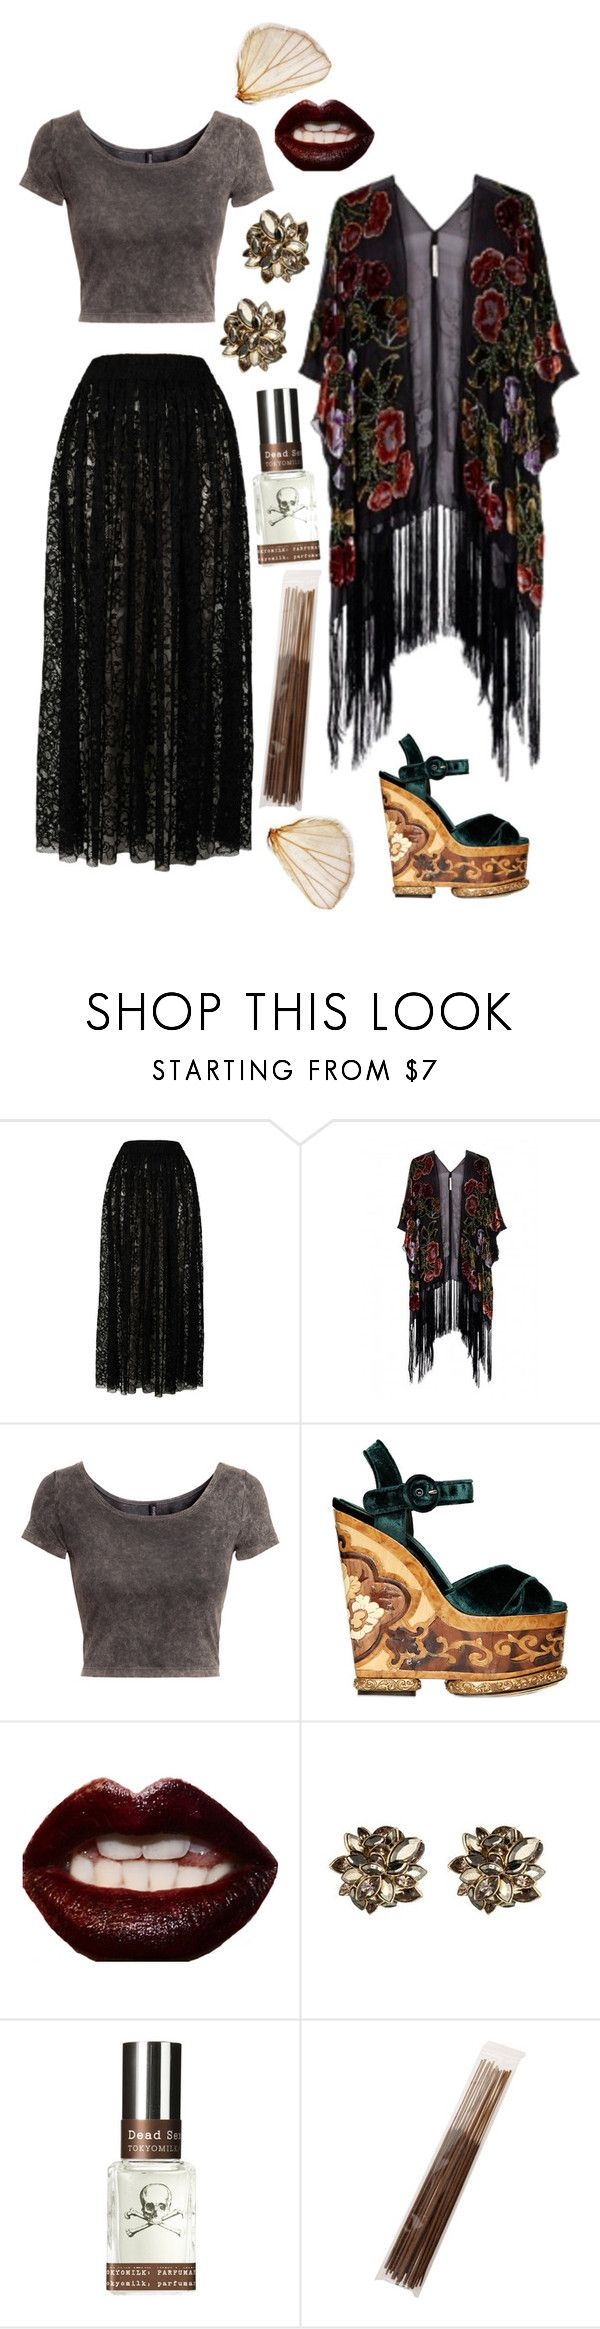 """Bohemian Goth"" by emelynmichal ❤ liked on Polyvore featuring Goldie, Kite and Butterfly, H&M, Dolce&Gabbana, Manic Panic NYC, Alexis Bittar, TokyoMilk and Votivo"